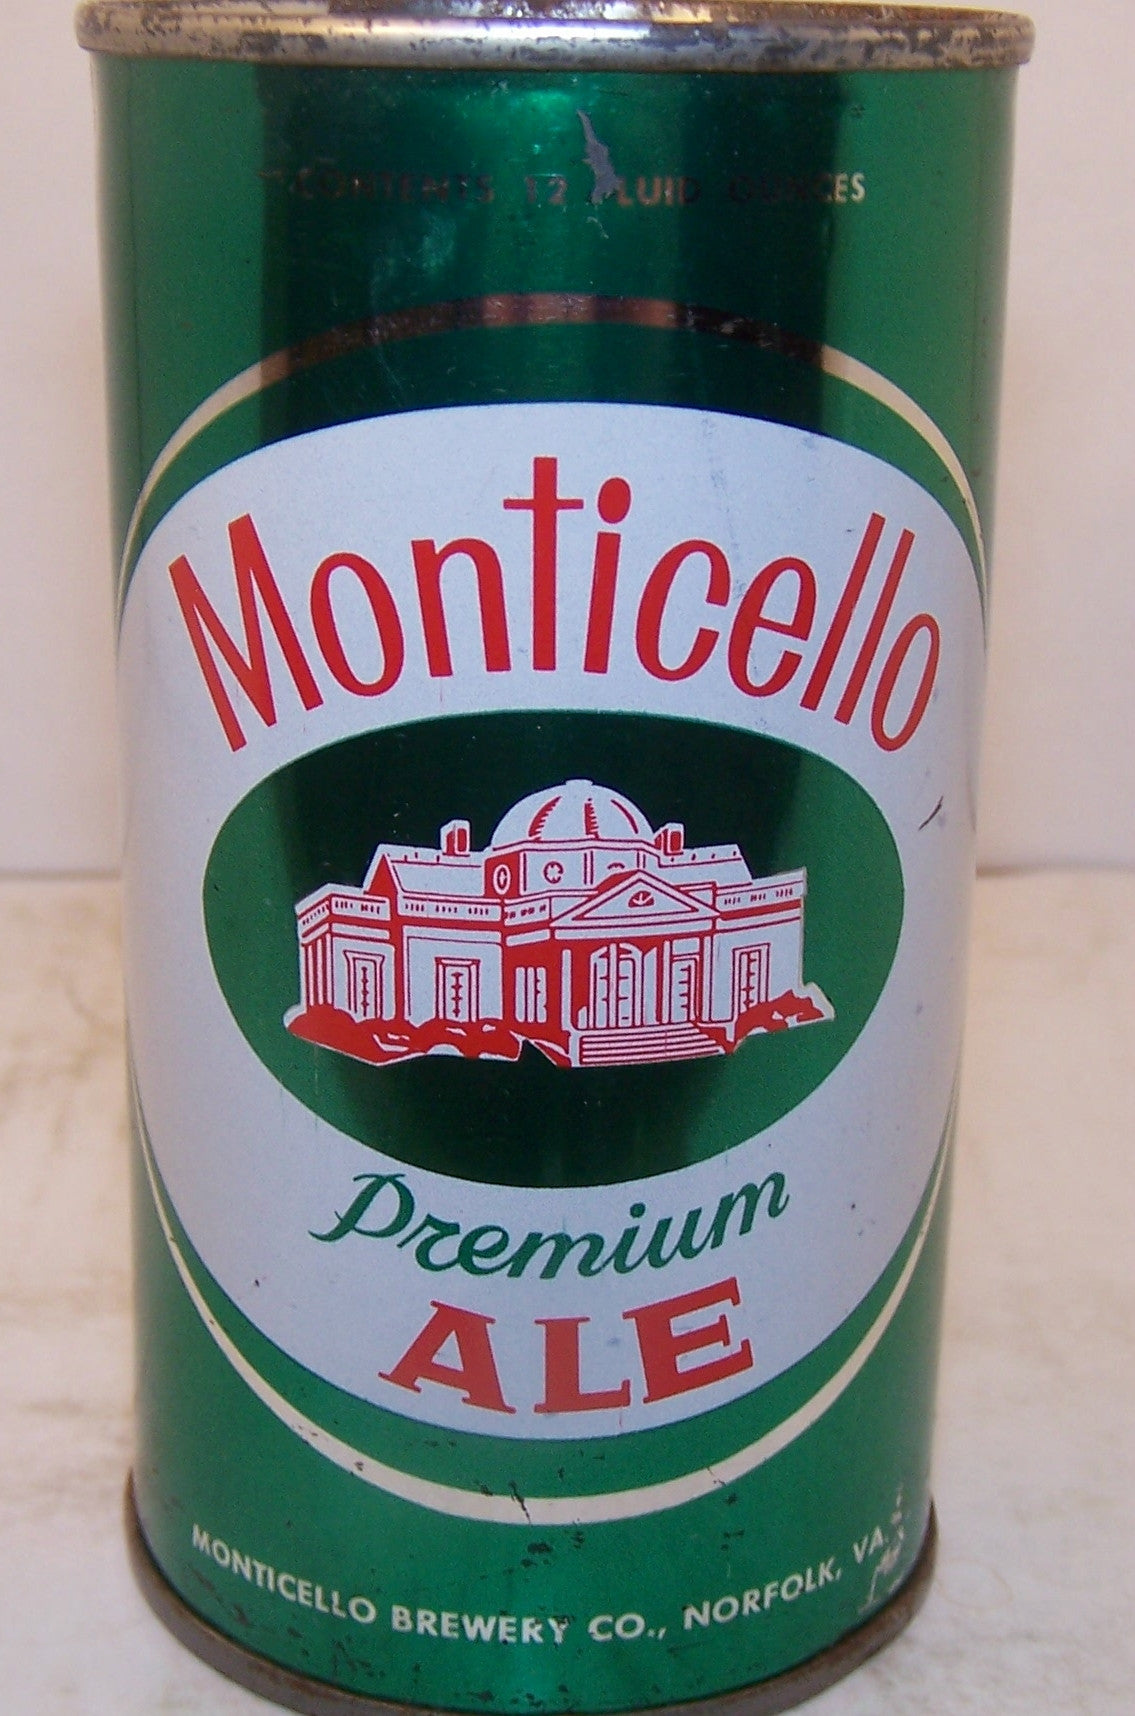 Monticello Premium Ale, USBC II 95-4 Grade 1/1- Sold on 4/12/15